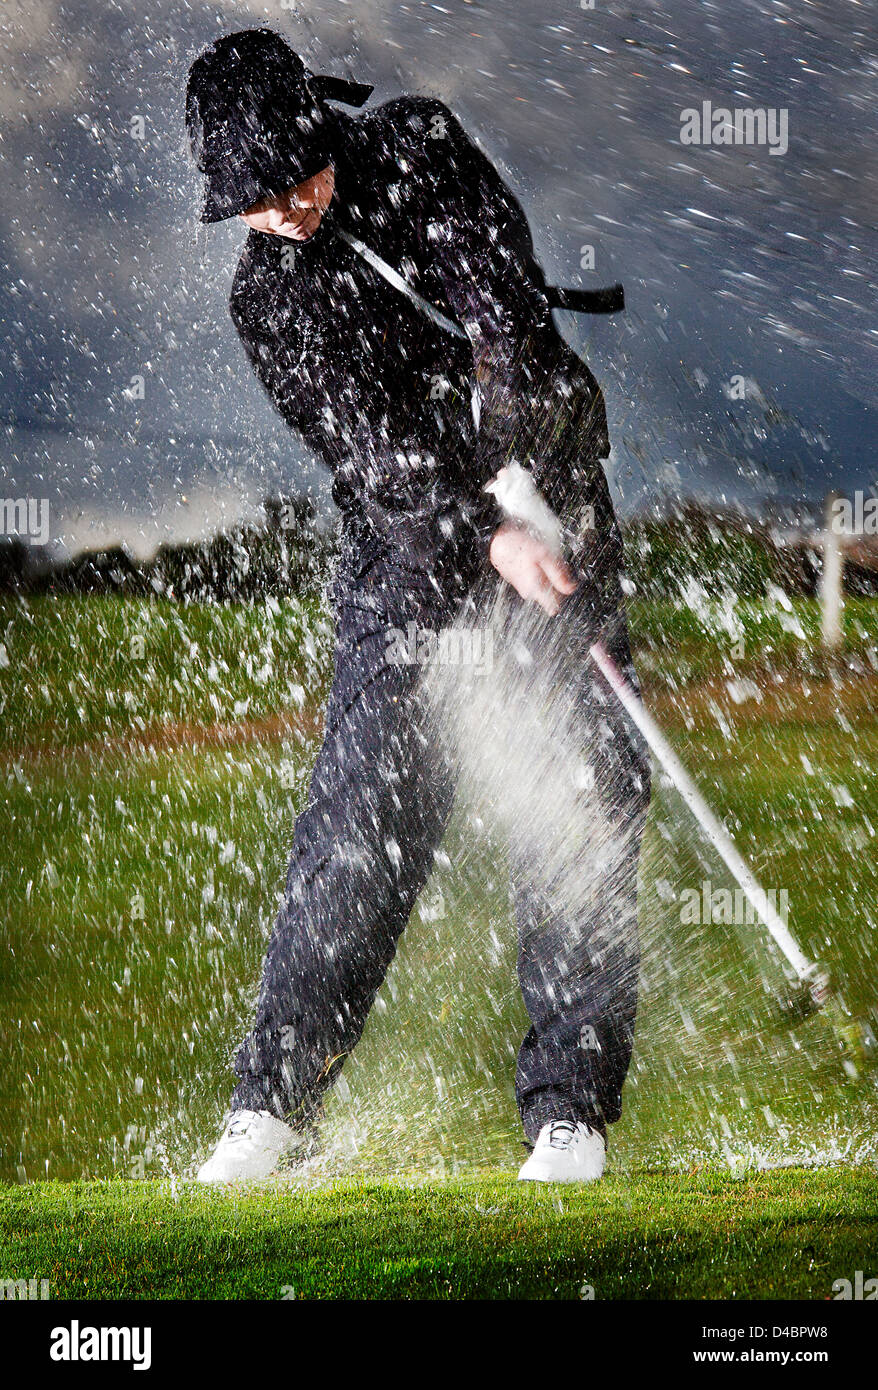 A European Male Age 20 25 Playing Golf In The Rain Stock